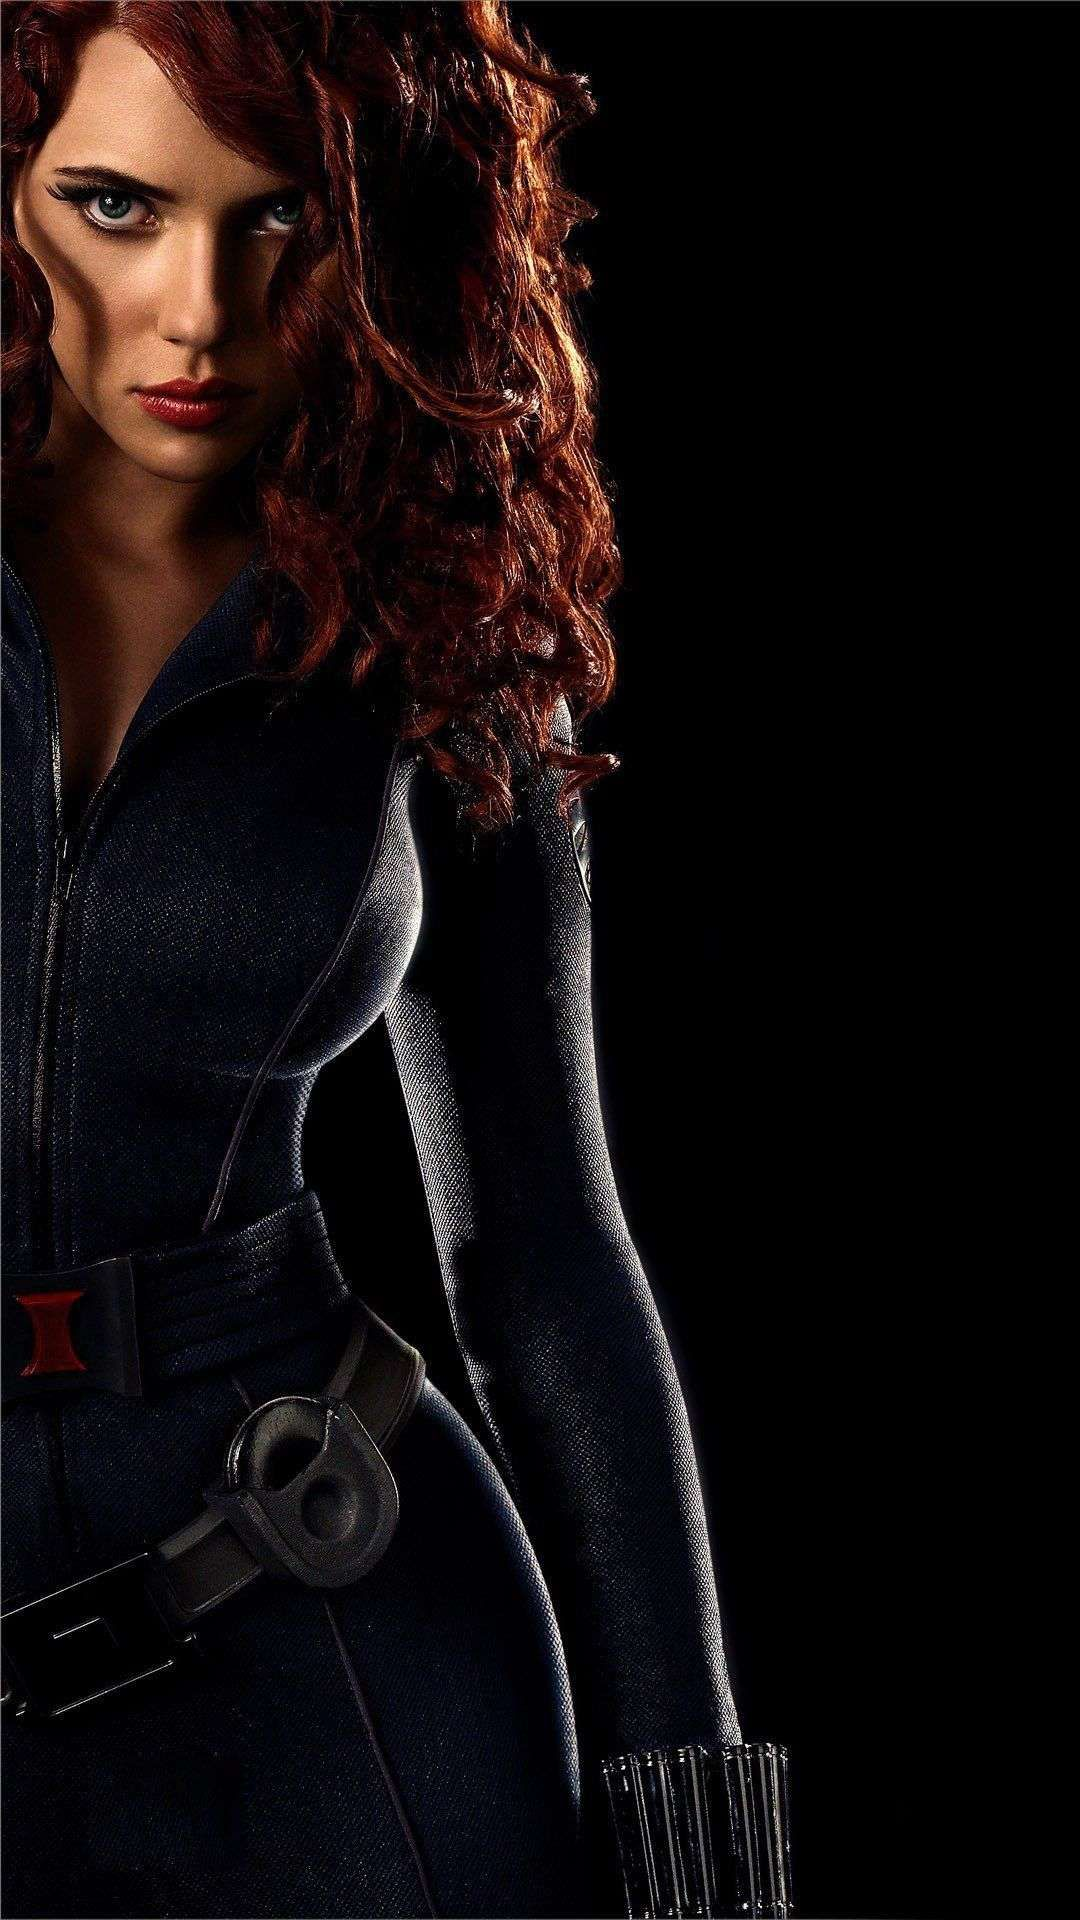 Black Widow Dark Iphone Wallpaper Black Widow Marvel Black Widow Avengers Black Widow Wallpaper